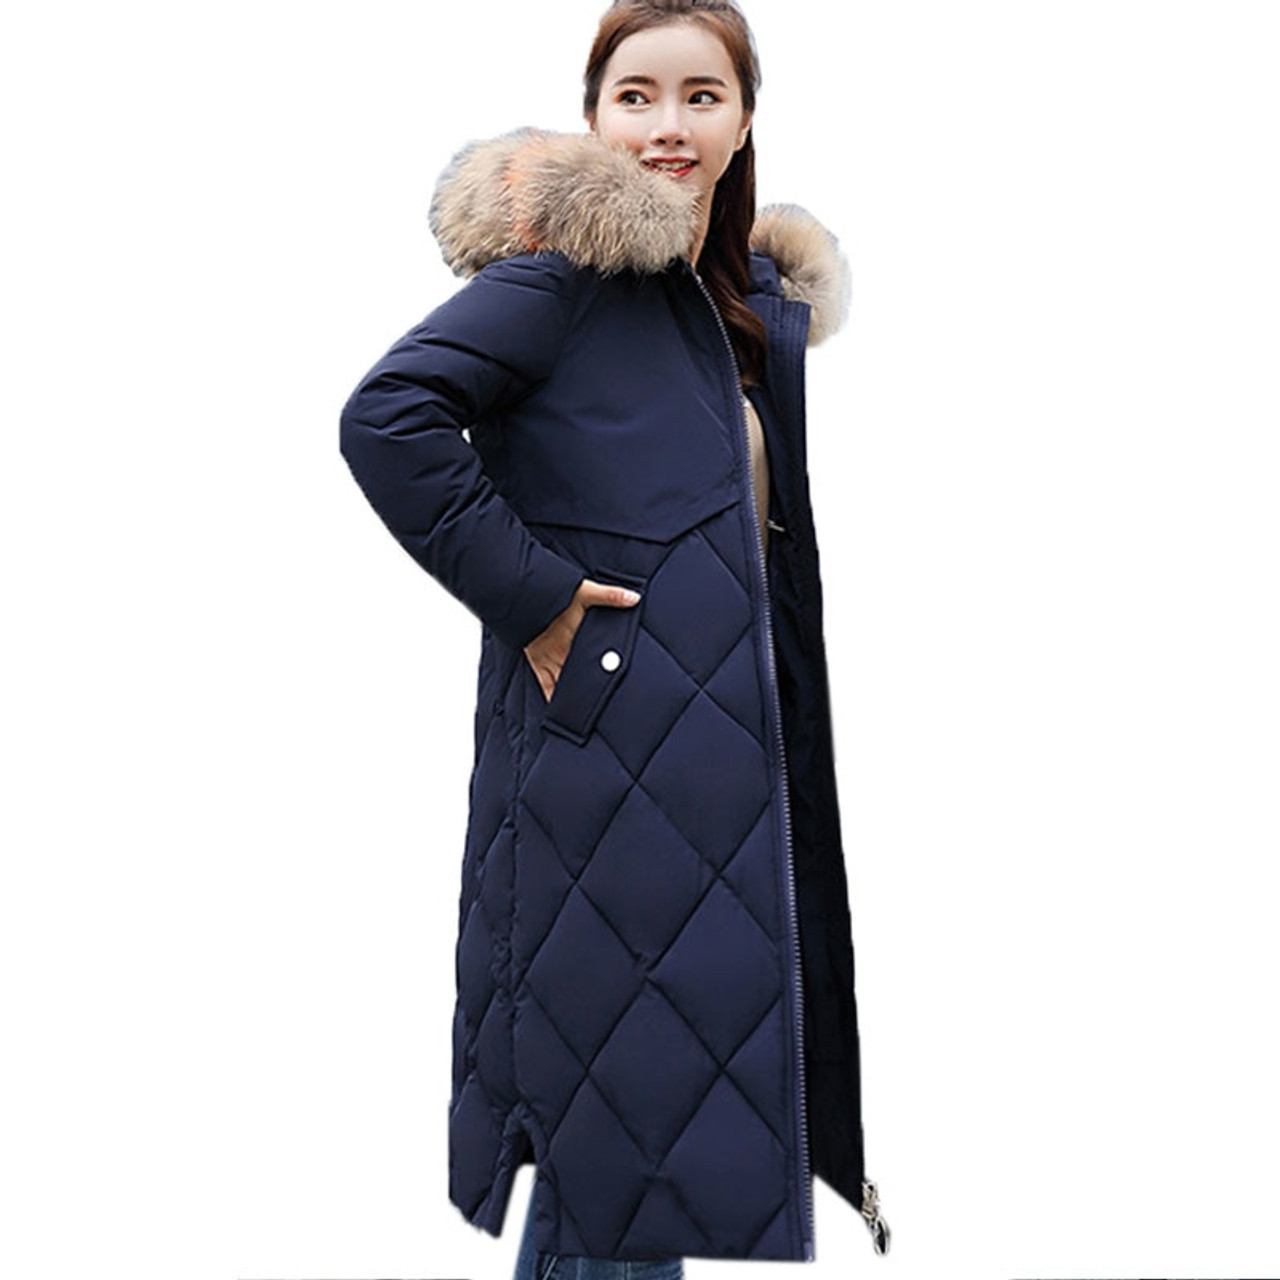 0ed3d07576b ... Plus Size Winter Women Jacket Coat Big Fur Hooded Warm Winter Parka  Jackets Long Thicken Down ...